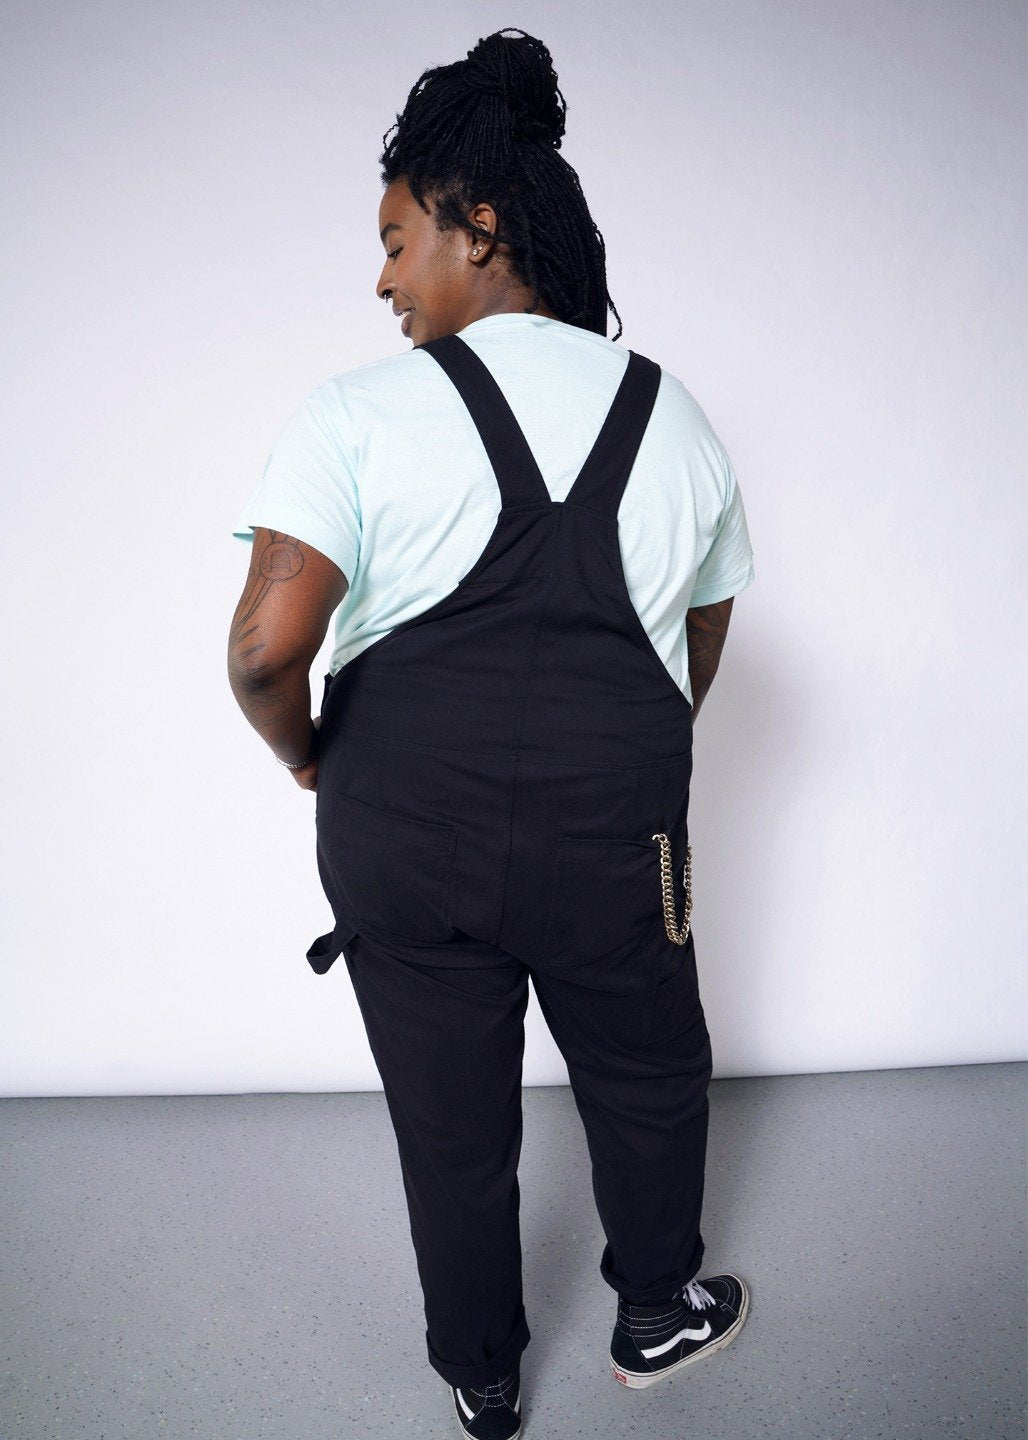 Backside of model wearing black overalls with metal hardware in size XXL, with an blue tee underneath and chain in back pocket